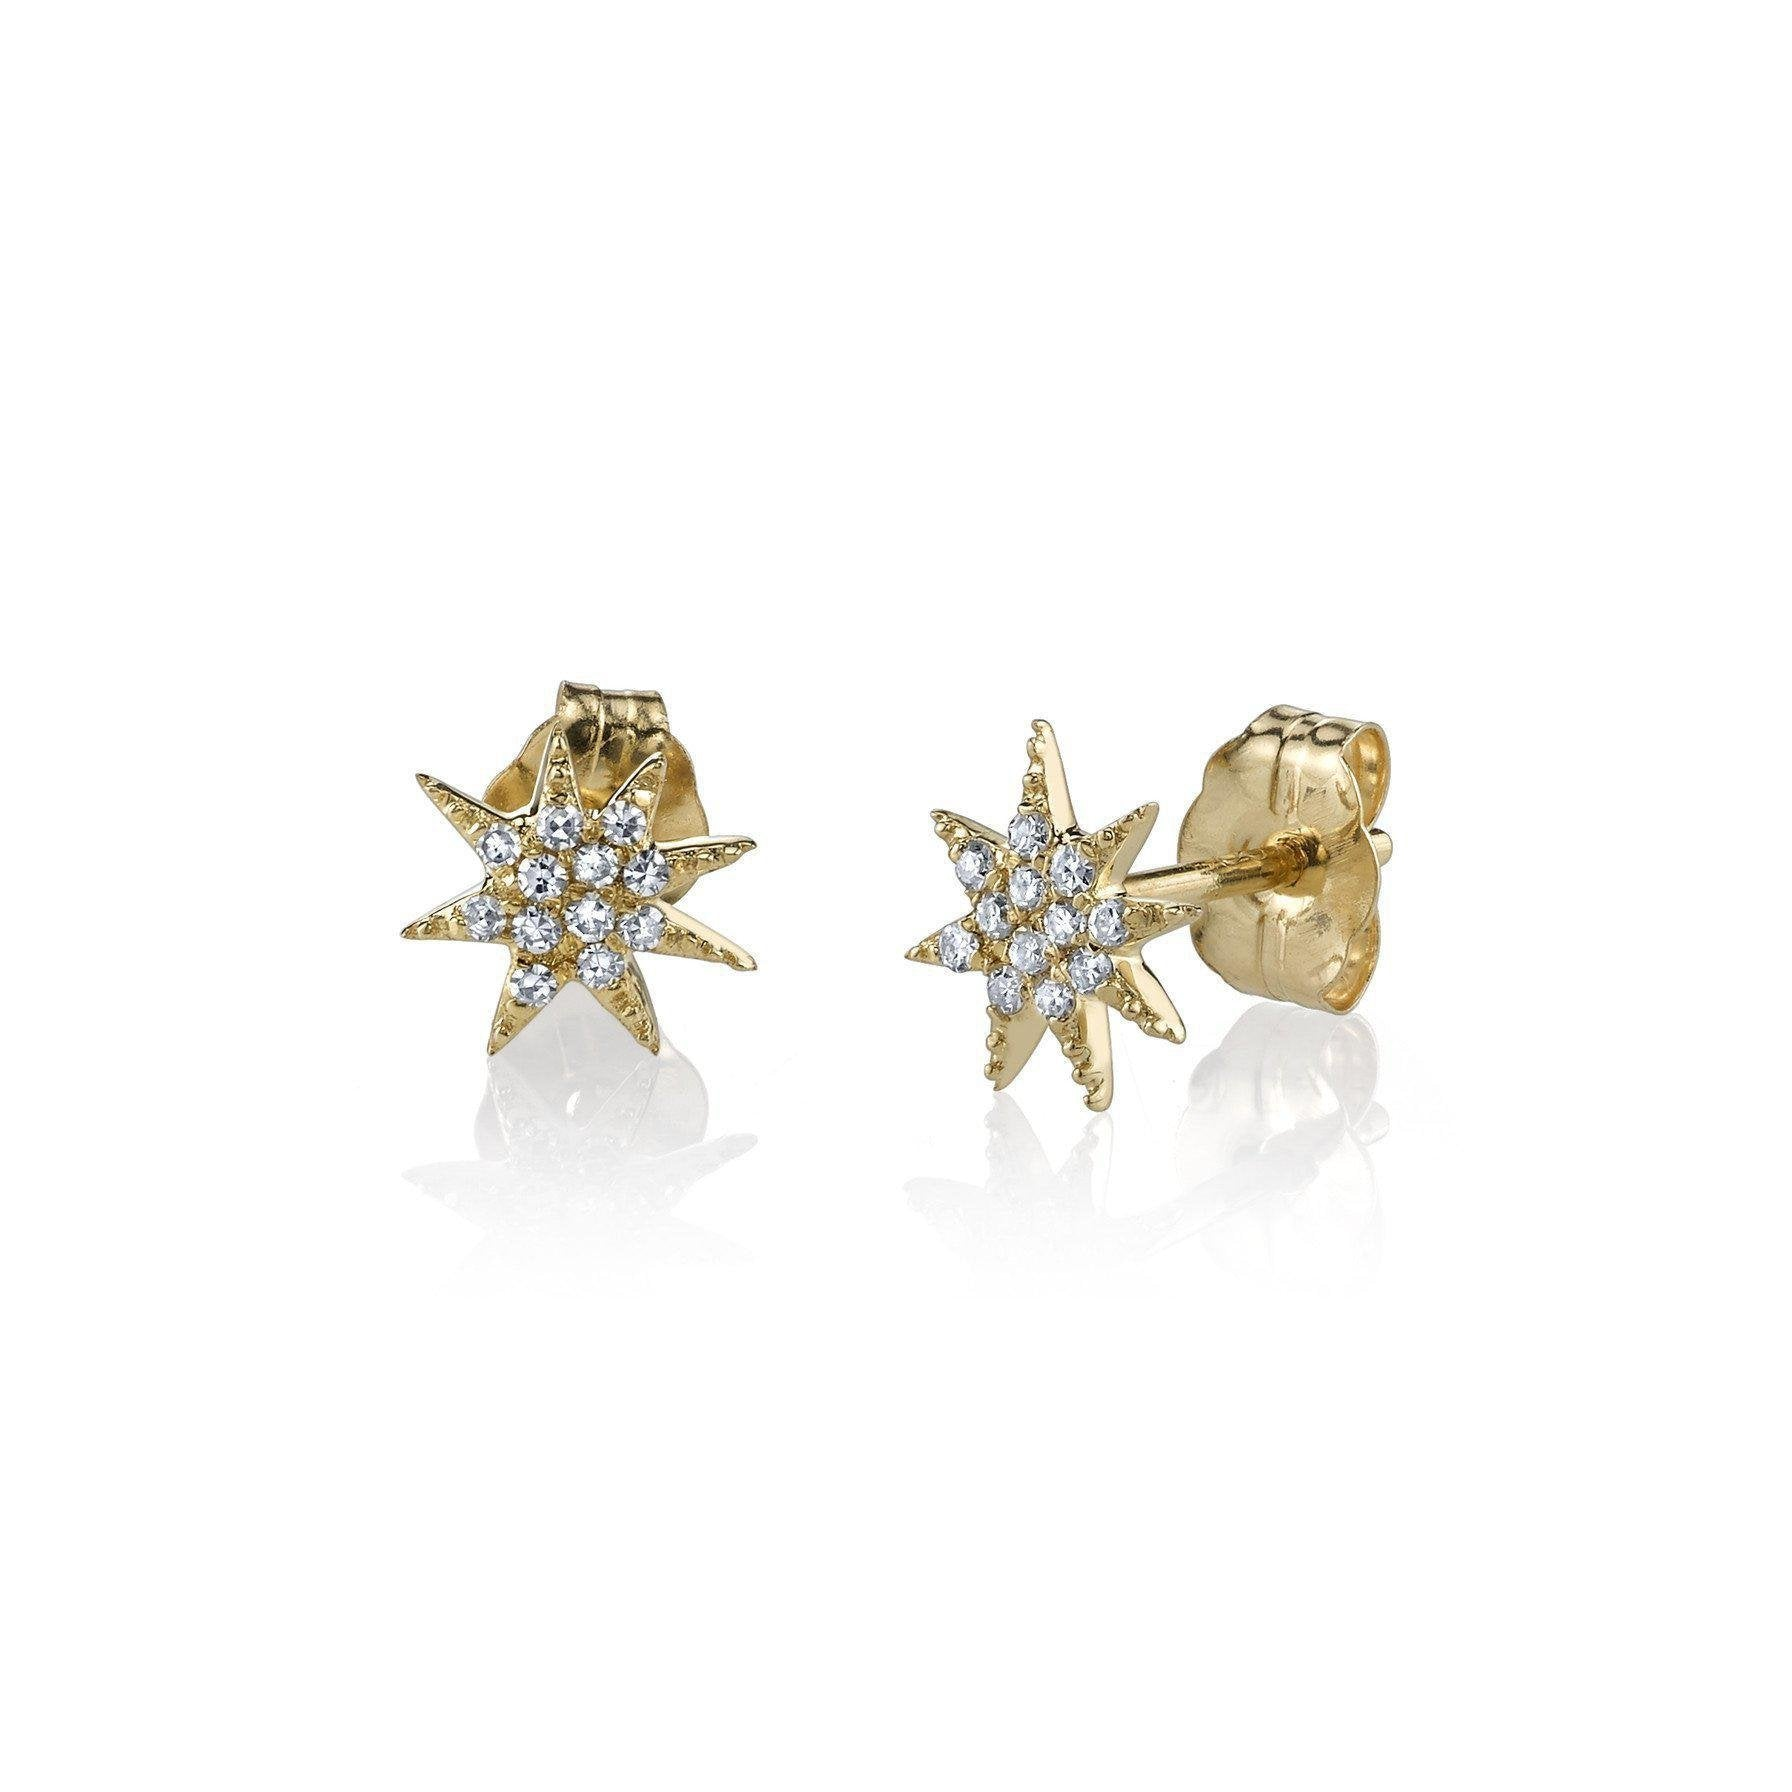 Single Star Earrings With White Pavé Diamonds - Gabriela Artigas